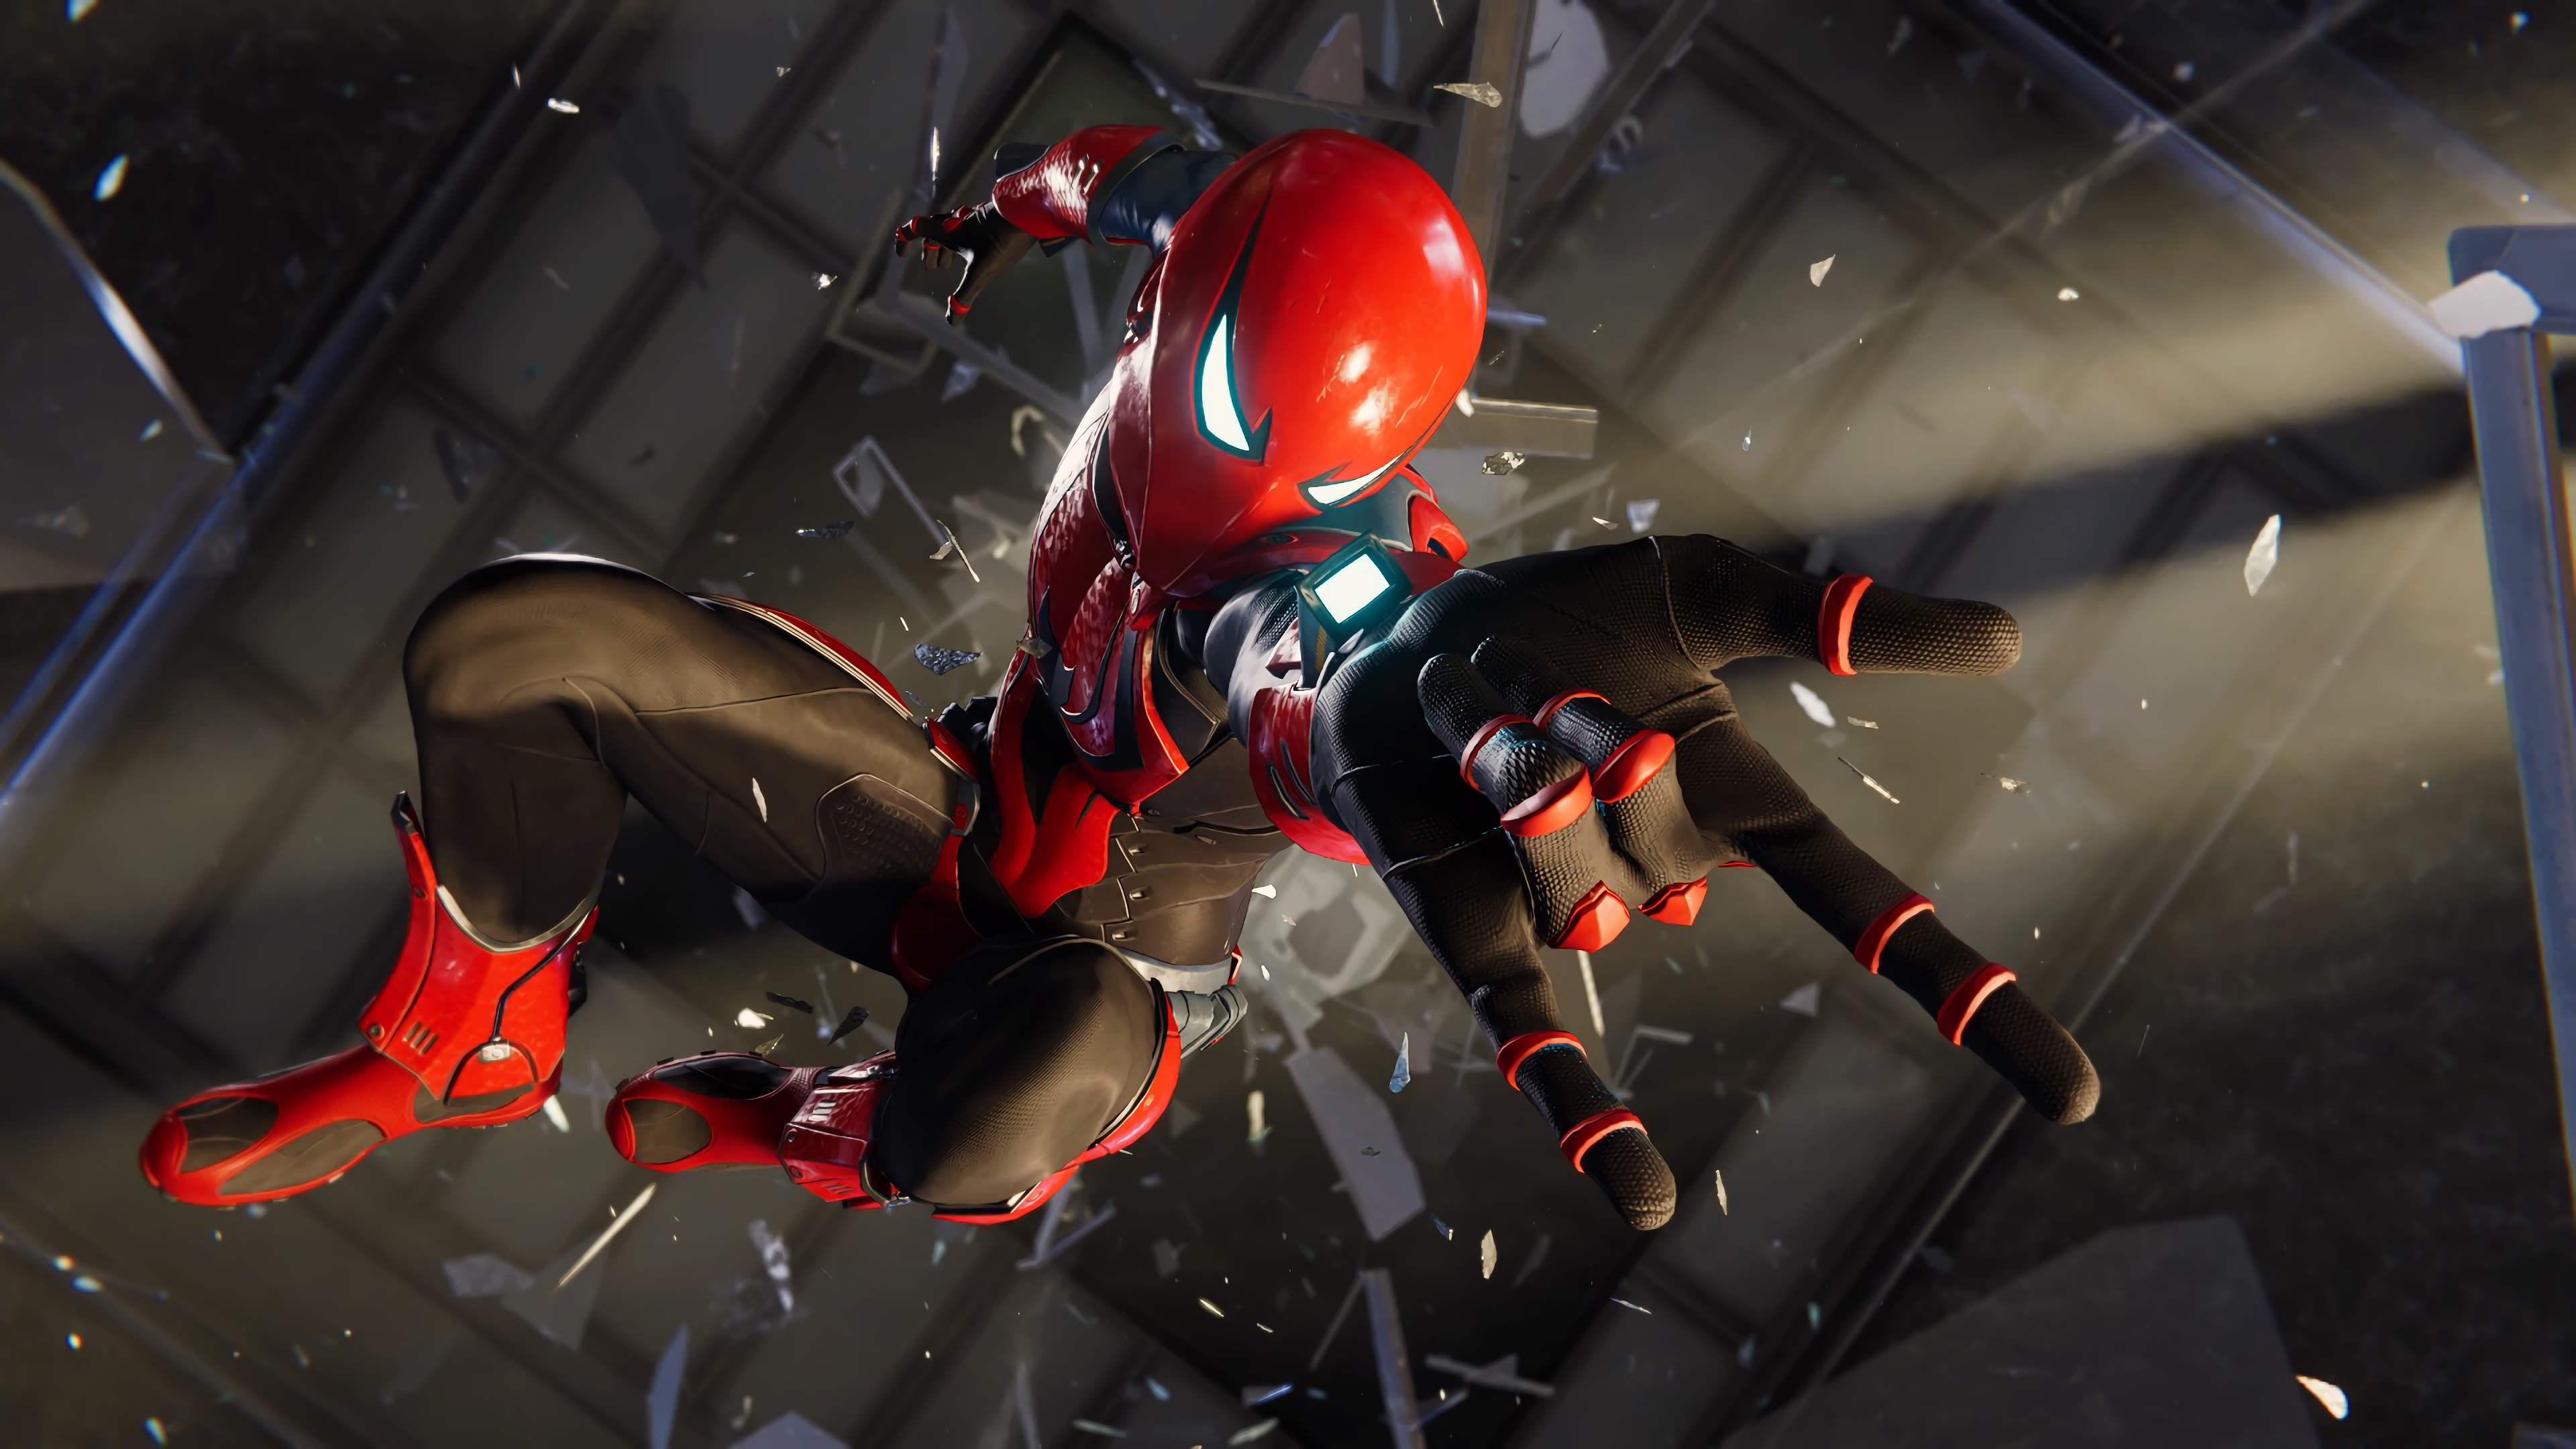 2560x1440 Spiderman Mk 3 4k 1440p Resolution Hd 4k Wallpapers